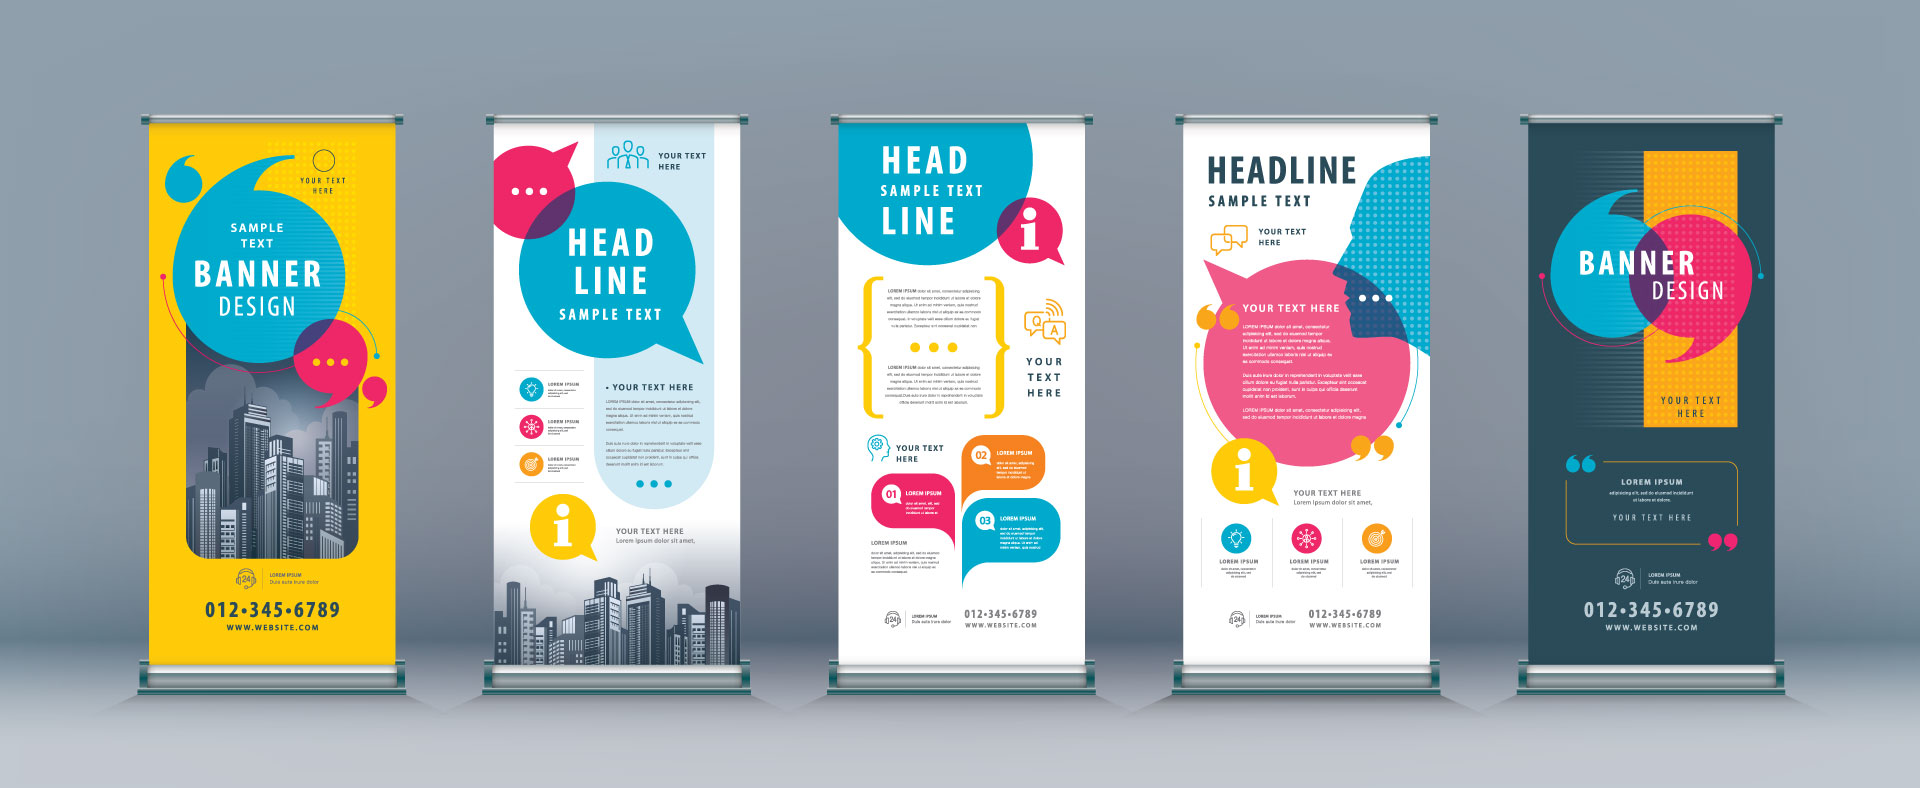 Retractable Banner Stands - Design Ideas